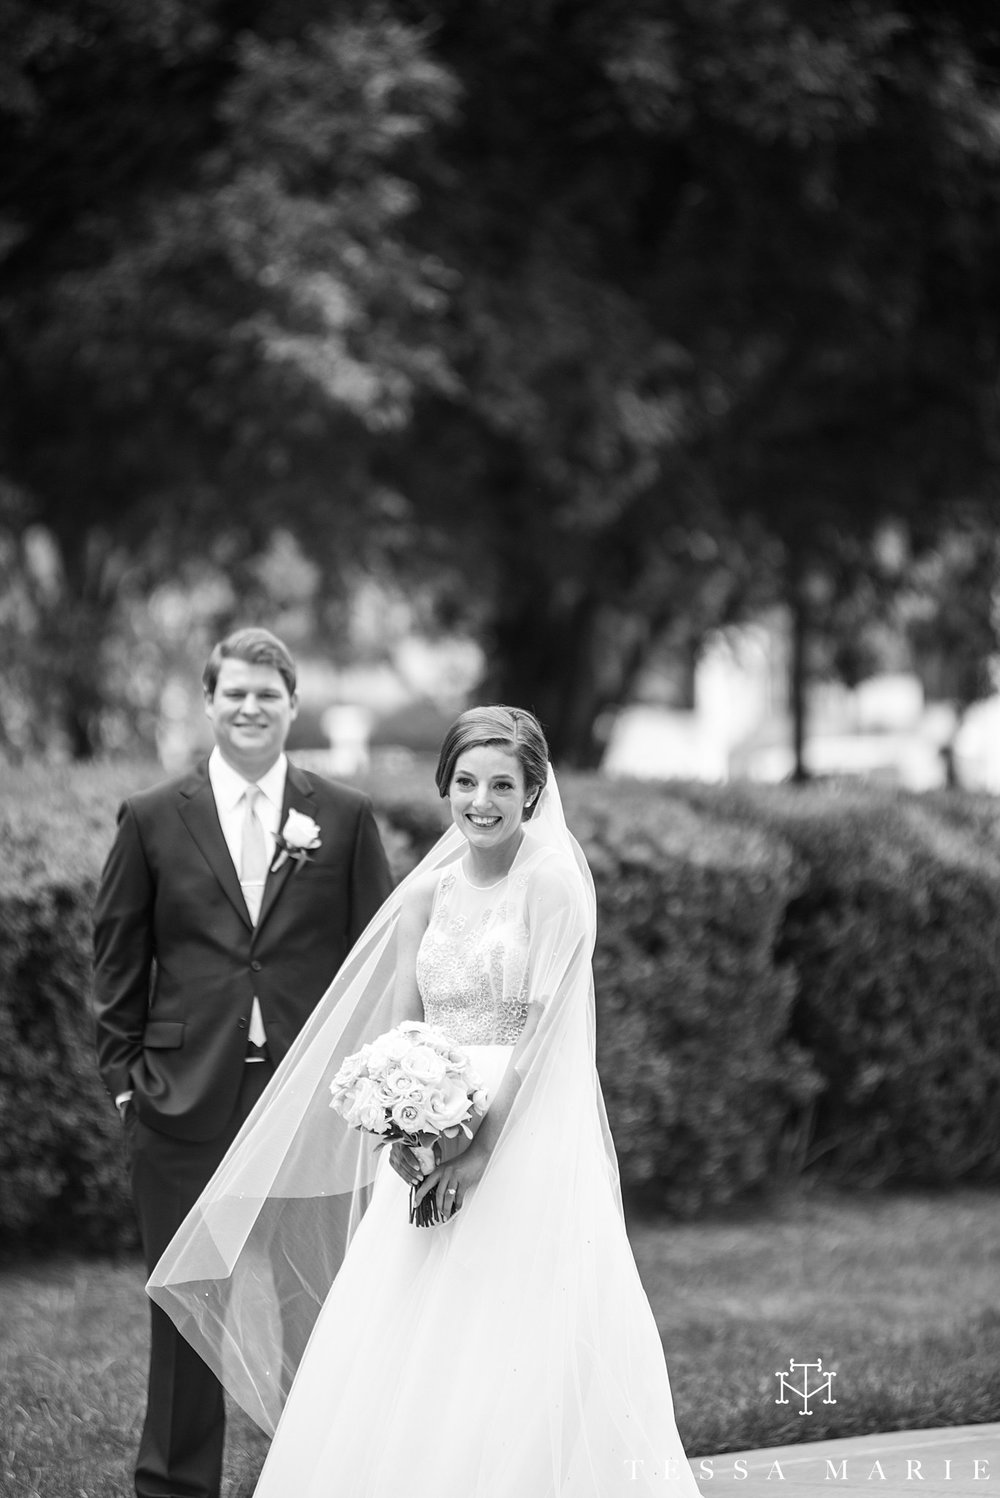 atlanta_wedding_photographer_tessa_marie_weddings_lowes_hotel_peachtree_midtown_fall_wedding_0277.jpg